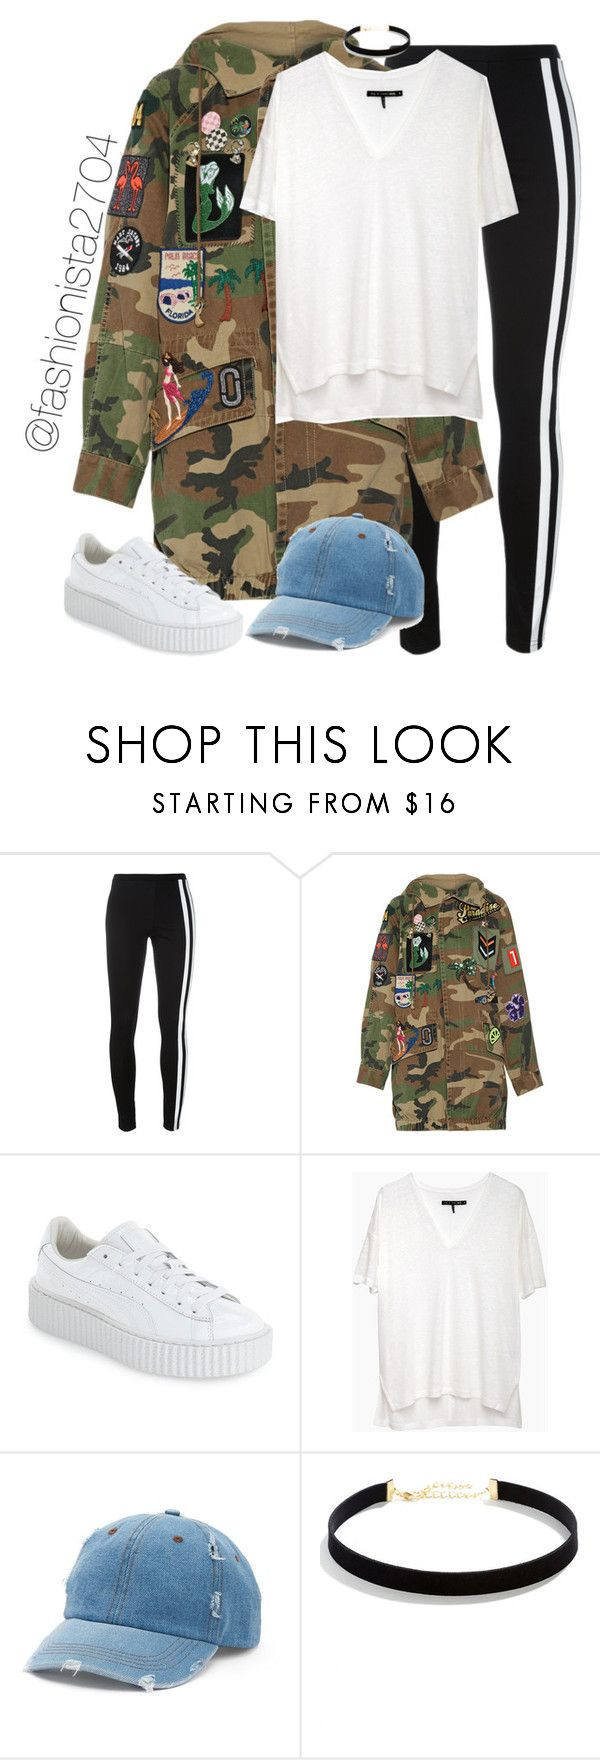 """Untitled #893"" by fashionista2704 ❤ liked on Polyvore featuring Y-3, Marc Jacobs, Puma, rag & bone/JEAN, Mudd and LULUS"